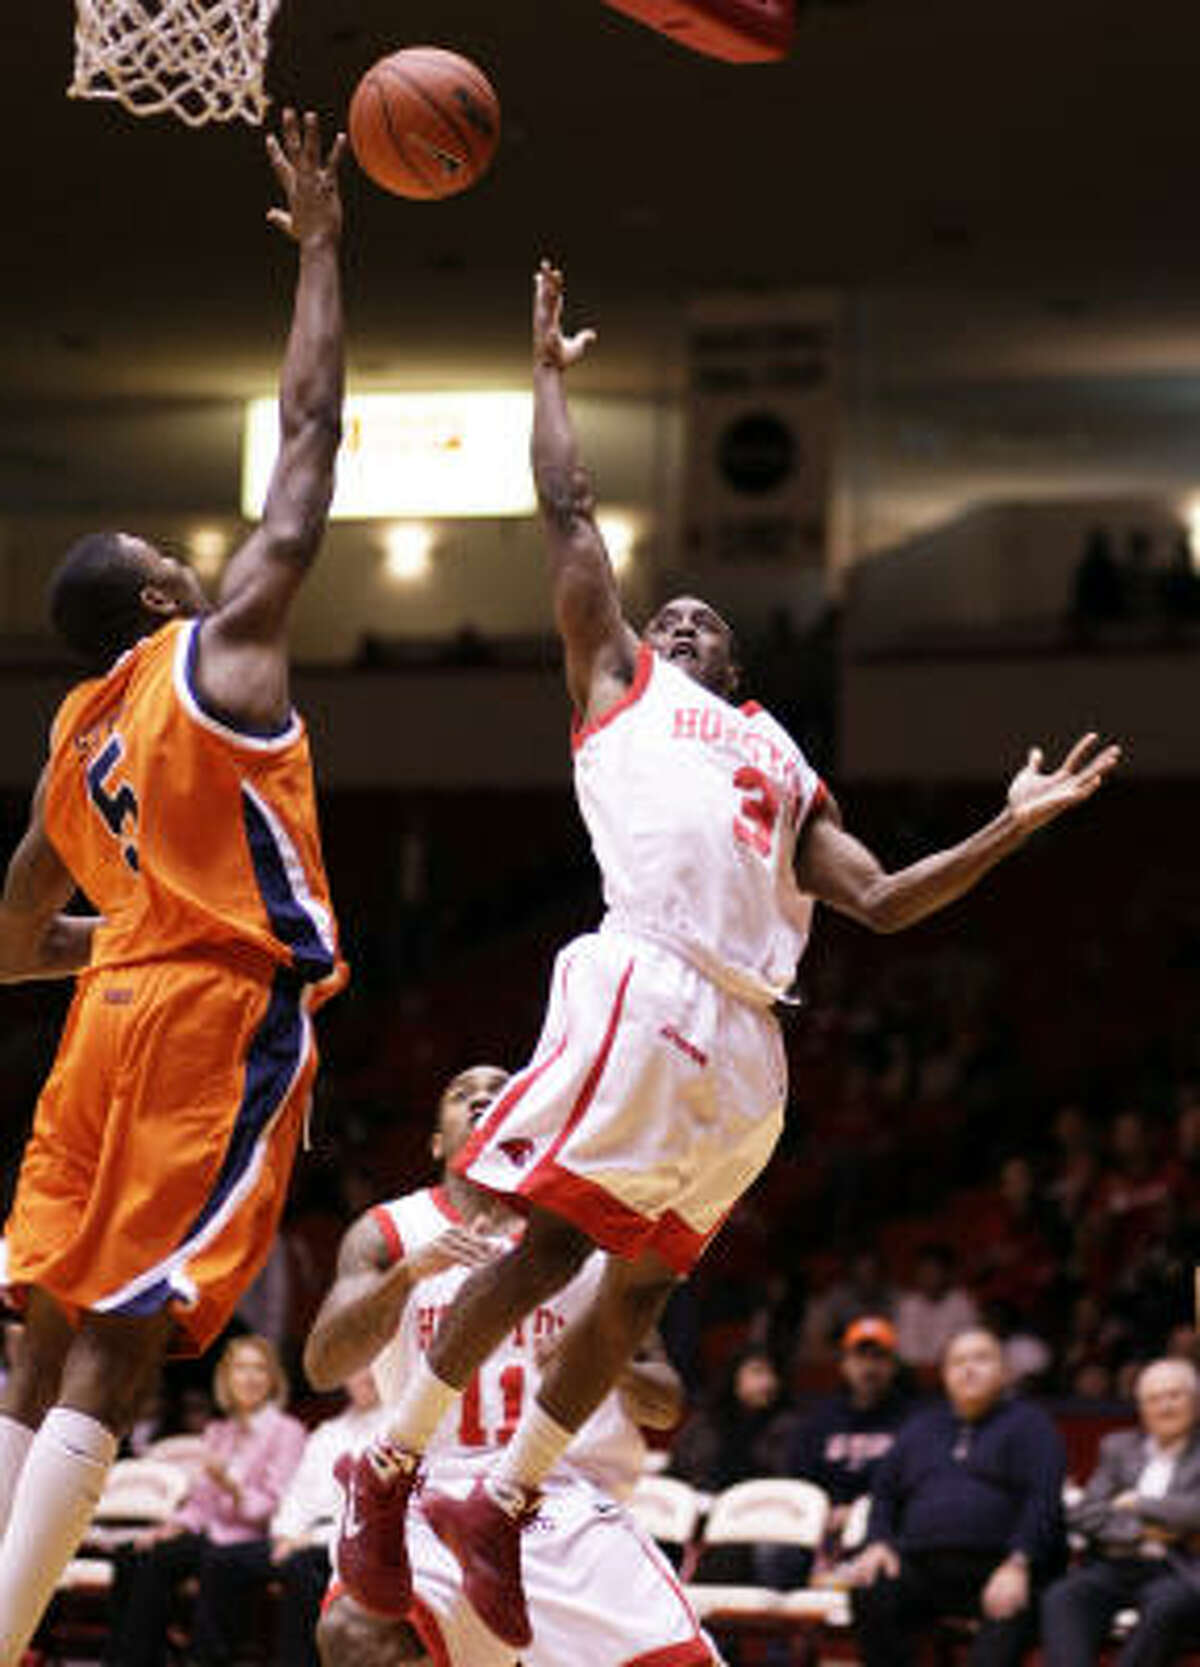 UH guard Desmond Wade (right) drives to the basket past UTEP's Julyan Stone during the first half.